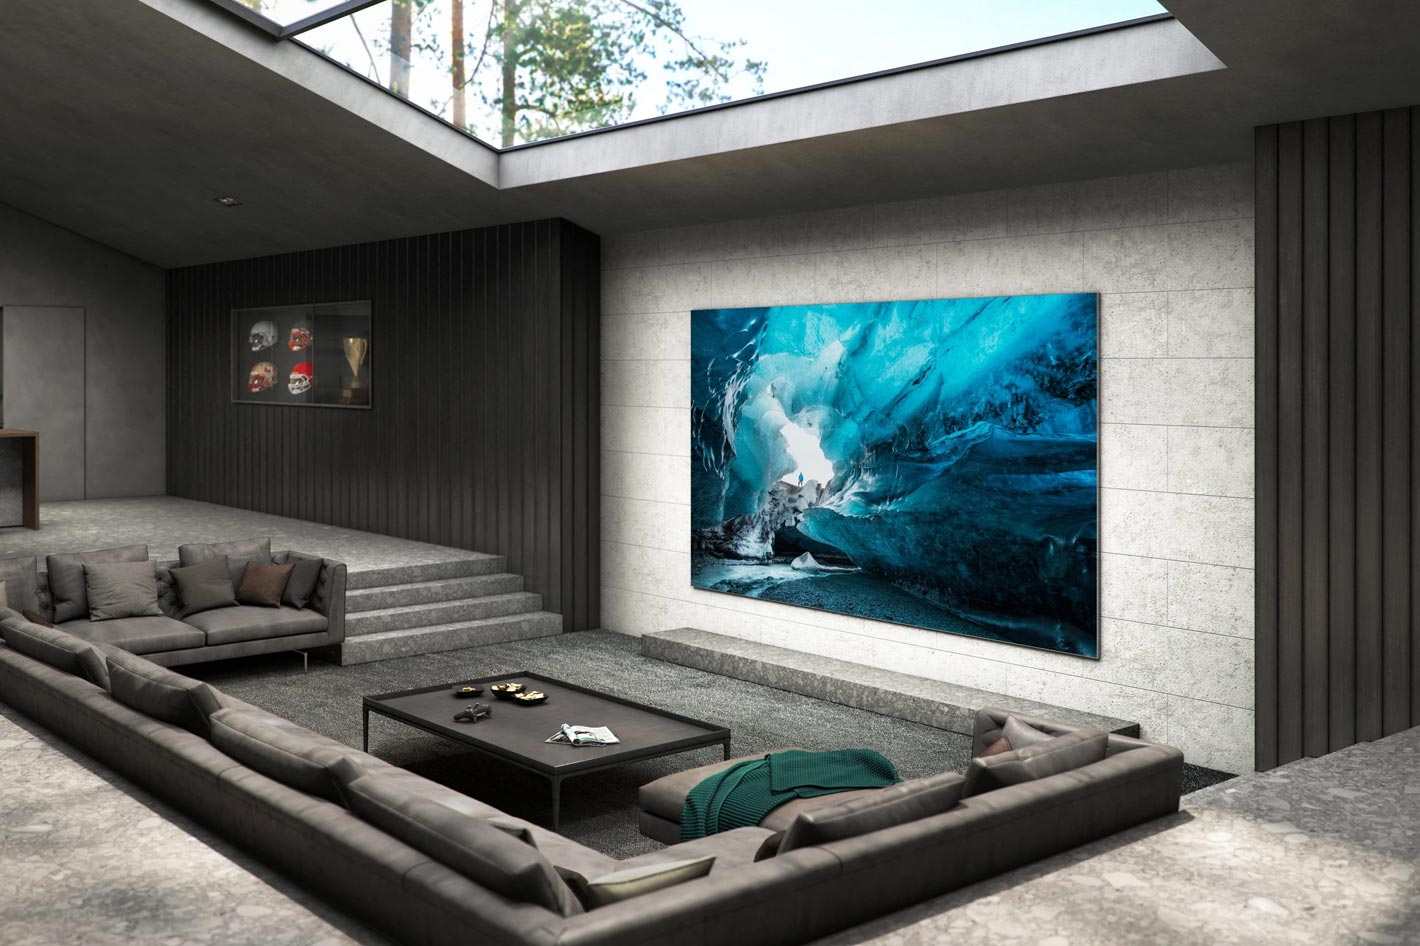 Samsung to show 110 MicroLED TV at CES 2021